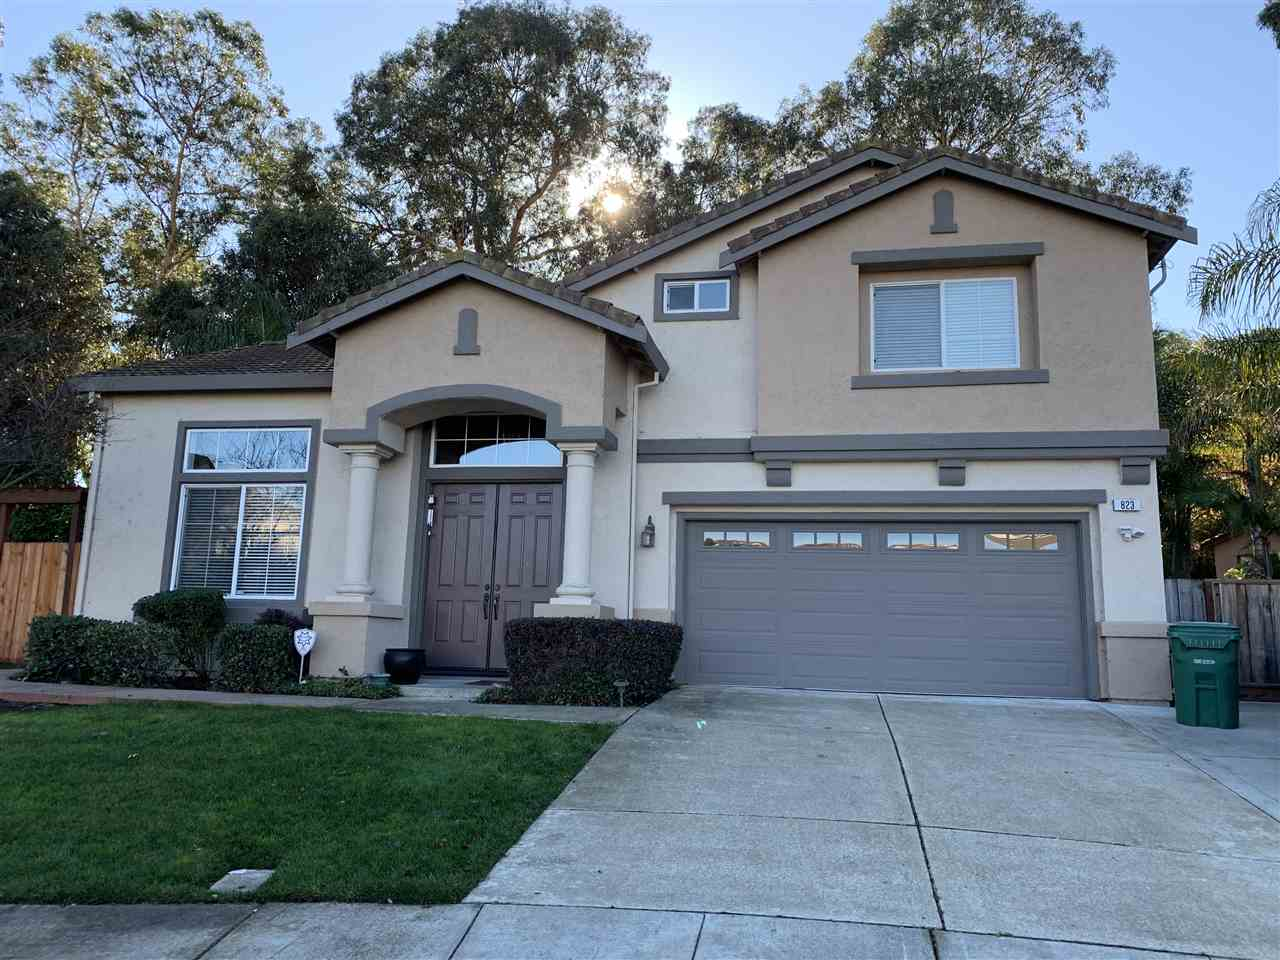 823 MEADOW WEST CT, RICHMOND, CA 94806